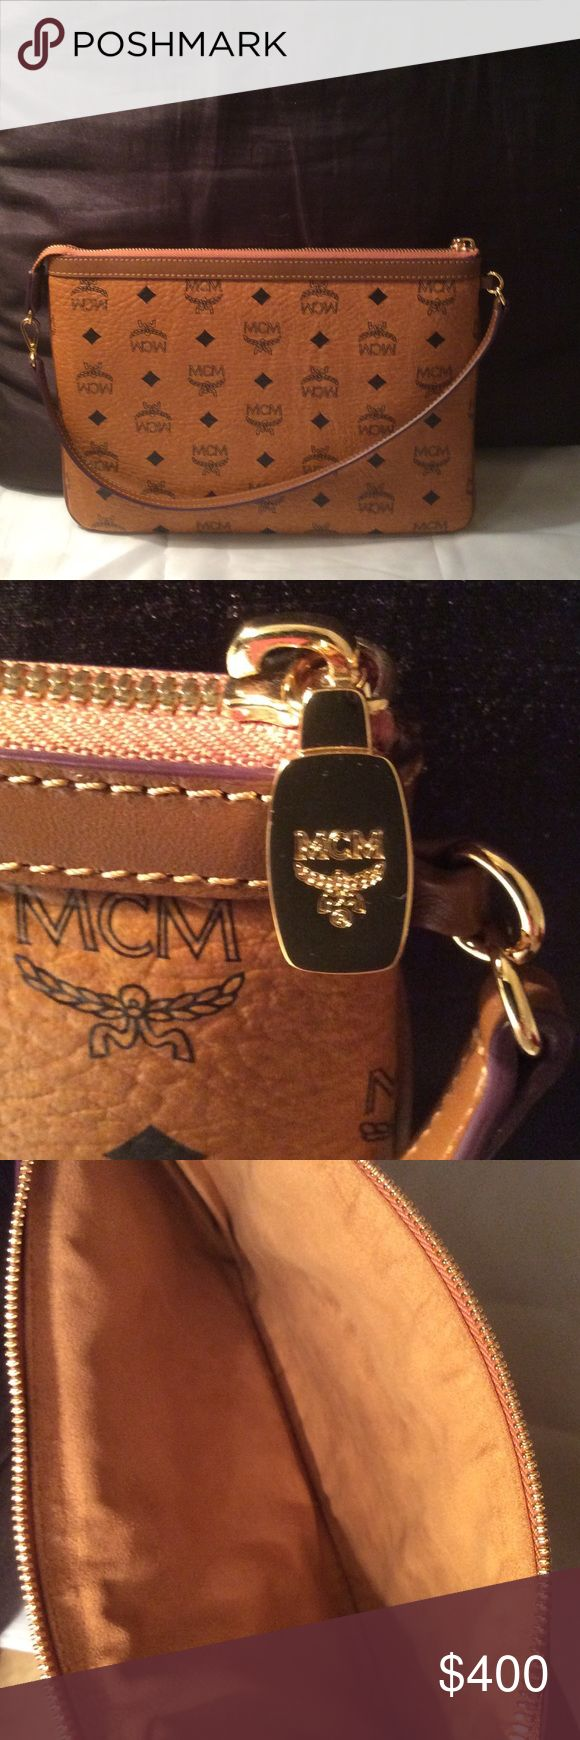 Flash sale!! Authentic MCM leather pouch MCM leather monogram large pouch/ shoulder bag in pristine condition. Soft leather!! No stains or rips. Serial: 10071408..MCM is manufactured in Germany, Korea and Italy!! Look on their website they will tell you. The last pic is just to show you how big the MCM pouch is. MCM Bags